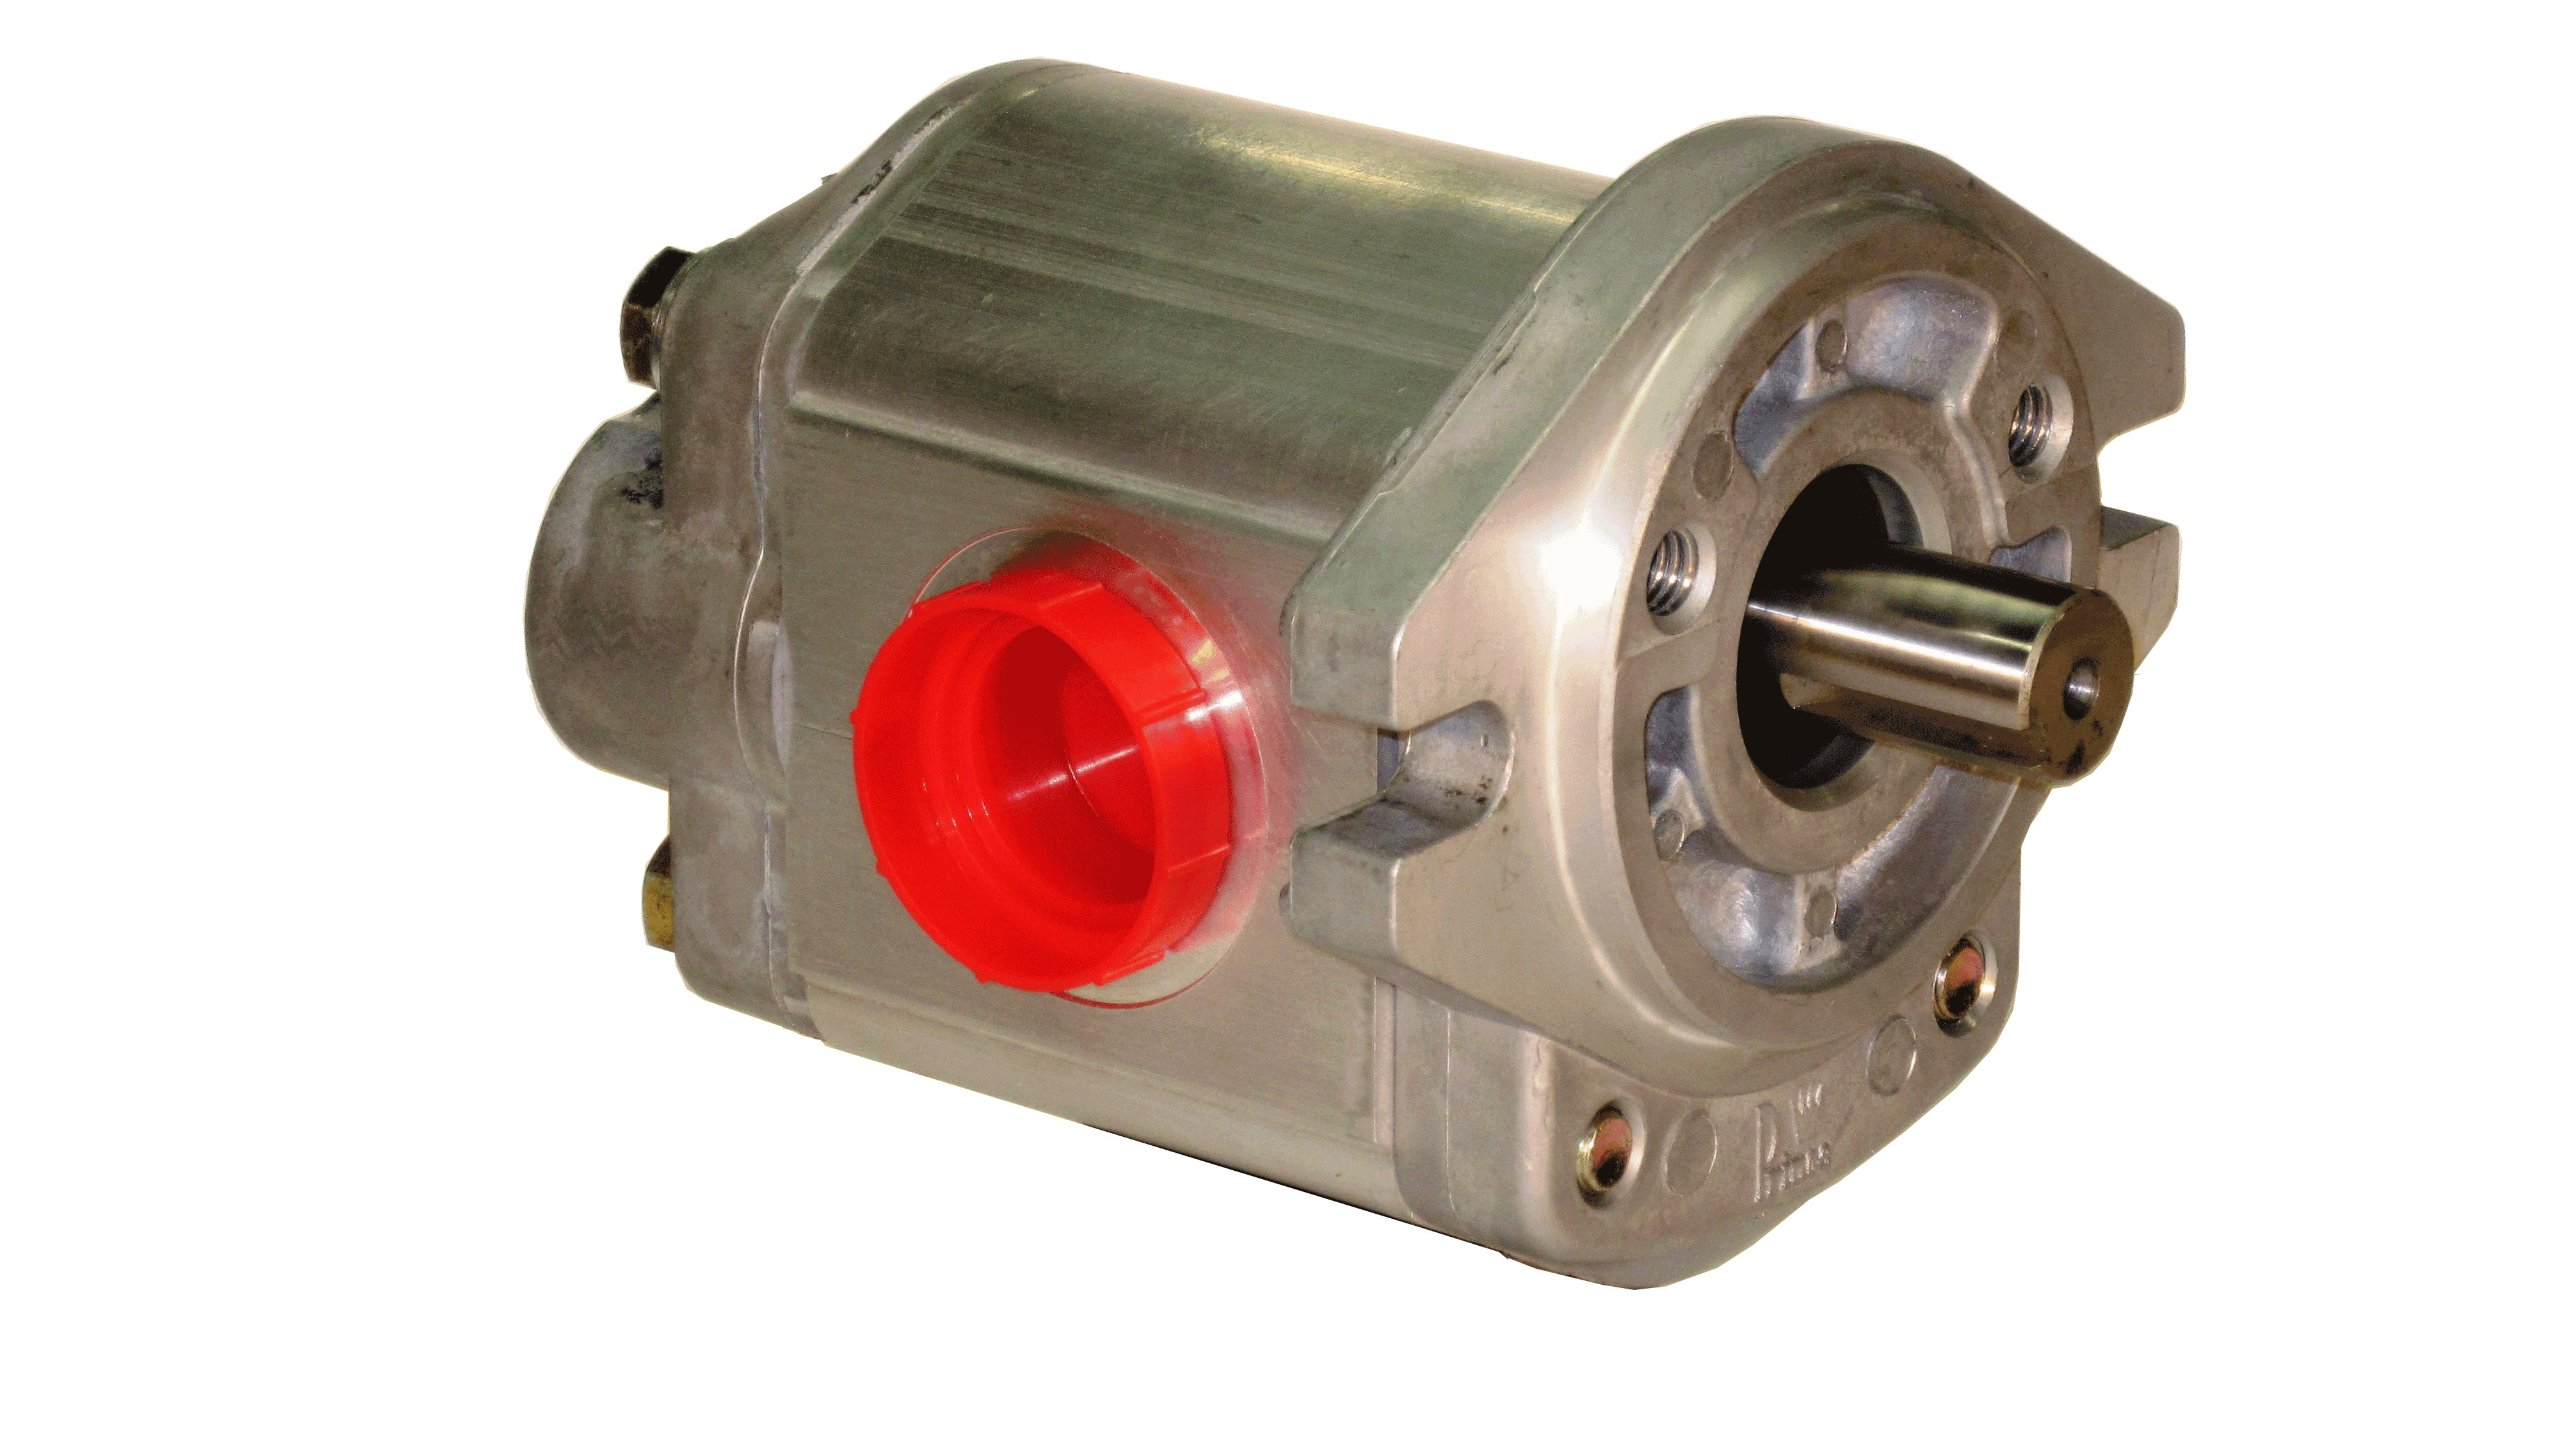 Prince Manufacturing SP20B06A9H2-R Hydraulic Gear Pump, 14.80 HP Motor, 3000 PSI Maximum Pressure, 6.92 GPM Maximum Flow Rate, Clockwise Rotation, Self-Lubricating, SAE A Flange, Aluminum